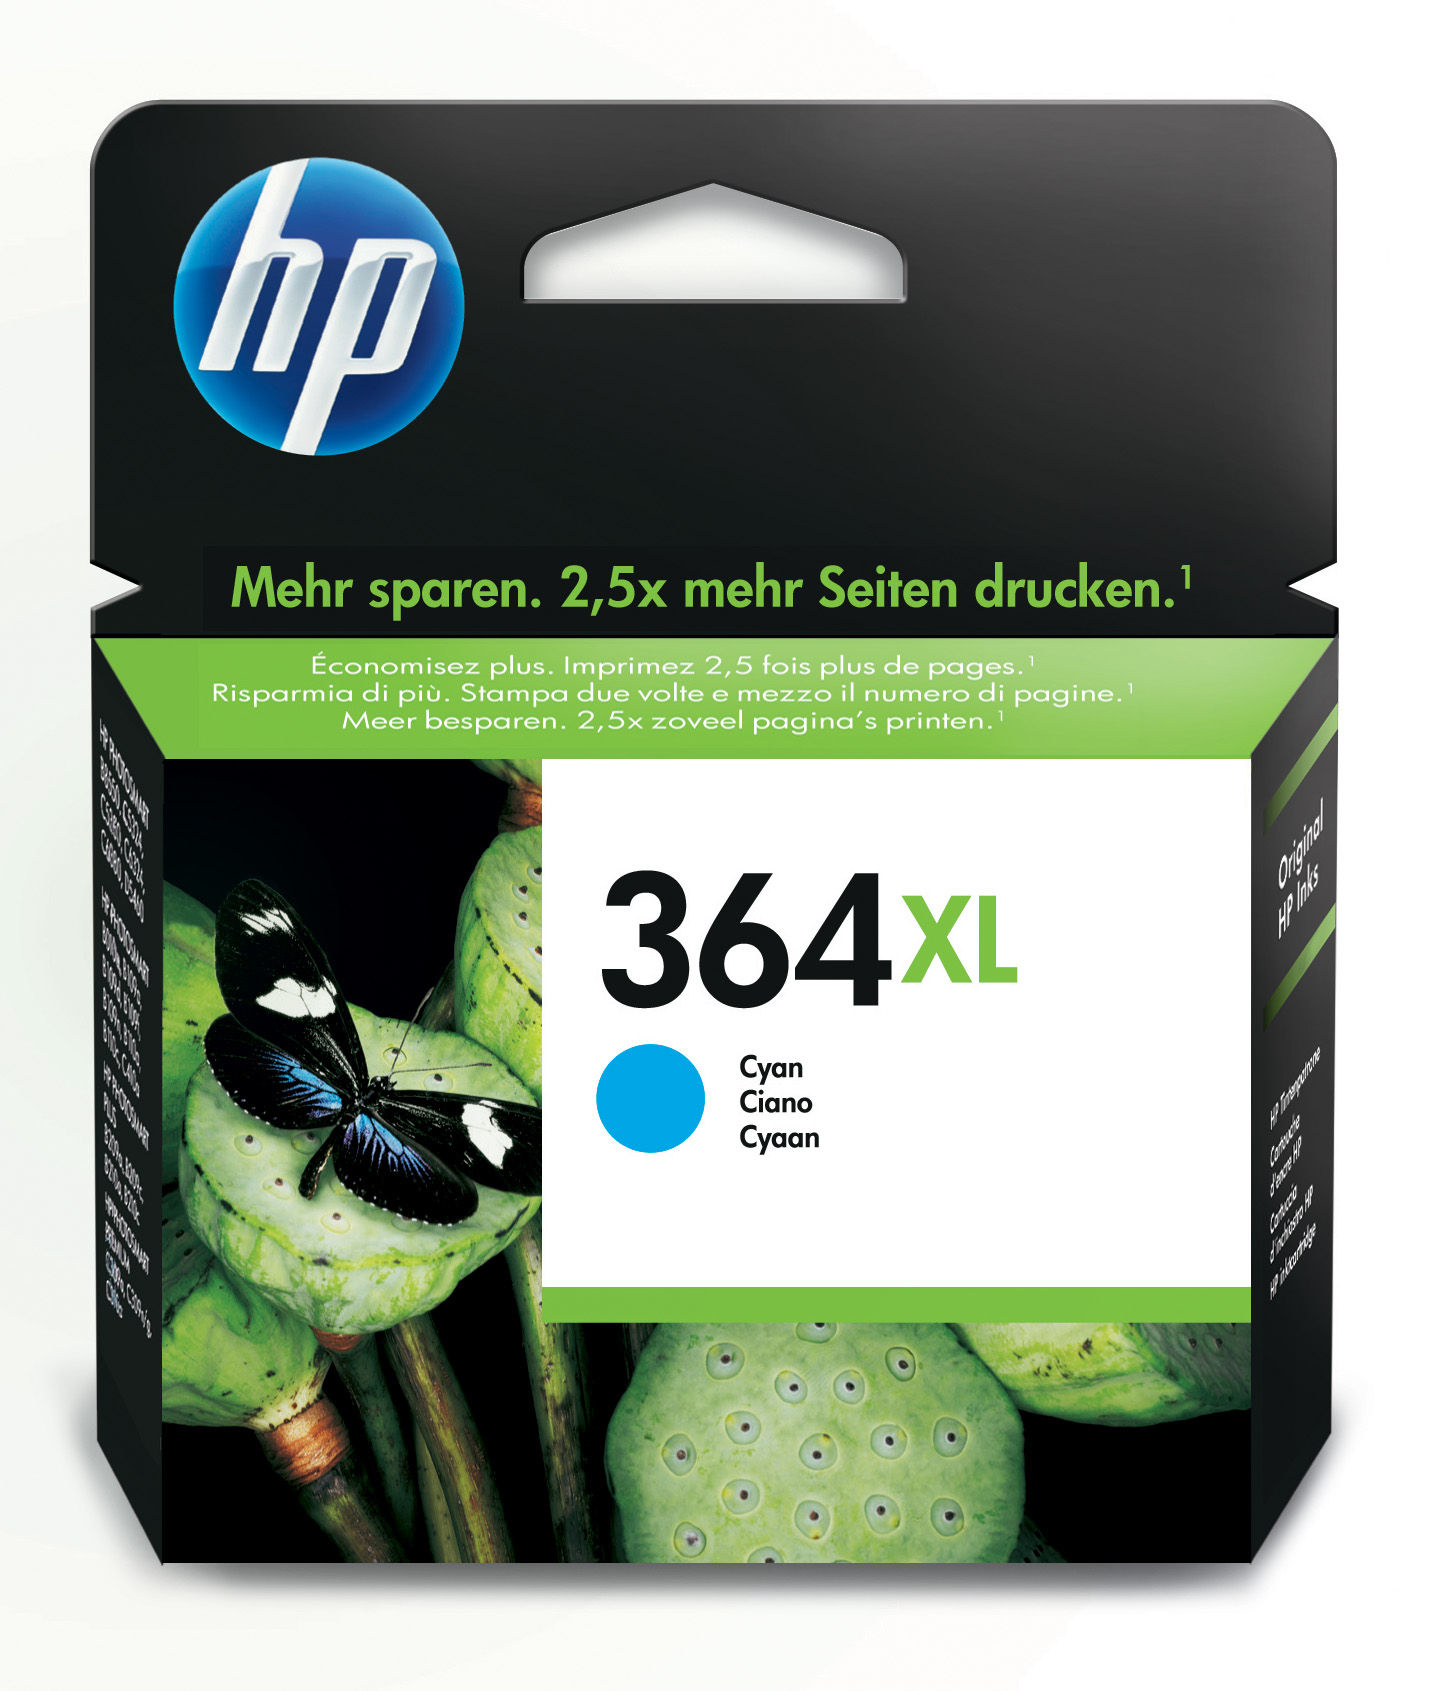 BB Reman HP CB323EE (364XL) Cyan Ink Cartridge CB323EE - rem01